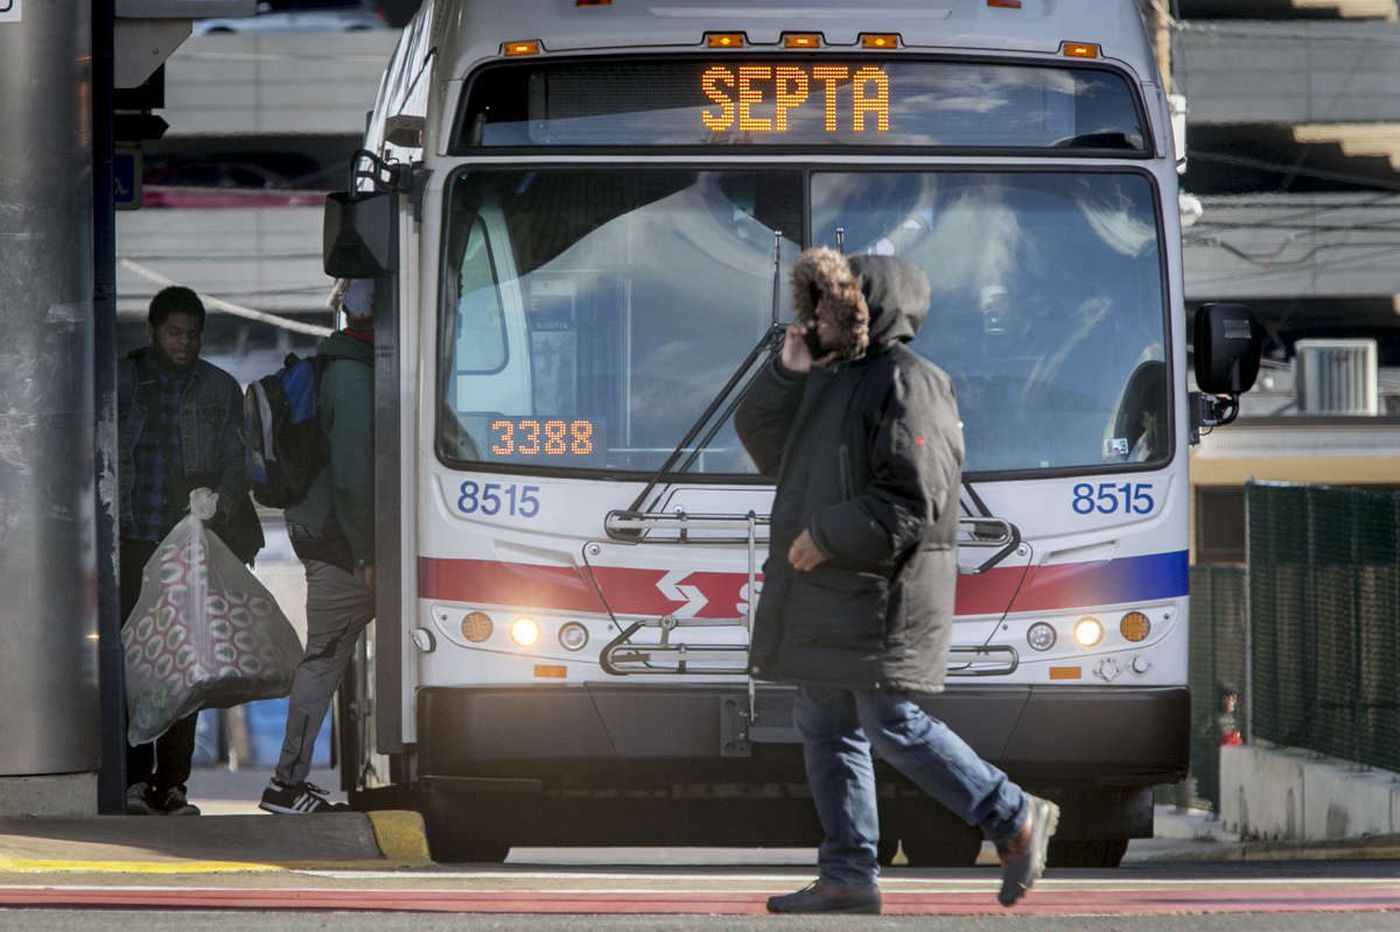 Cars are blocking bus stops everywhere in Philly. The PPA has a simple fix